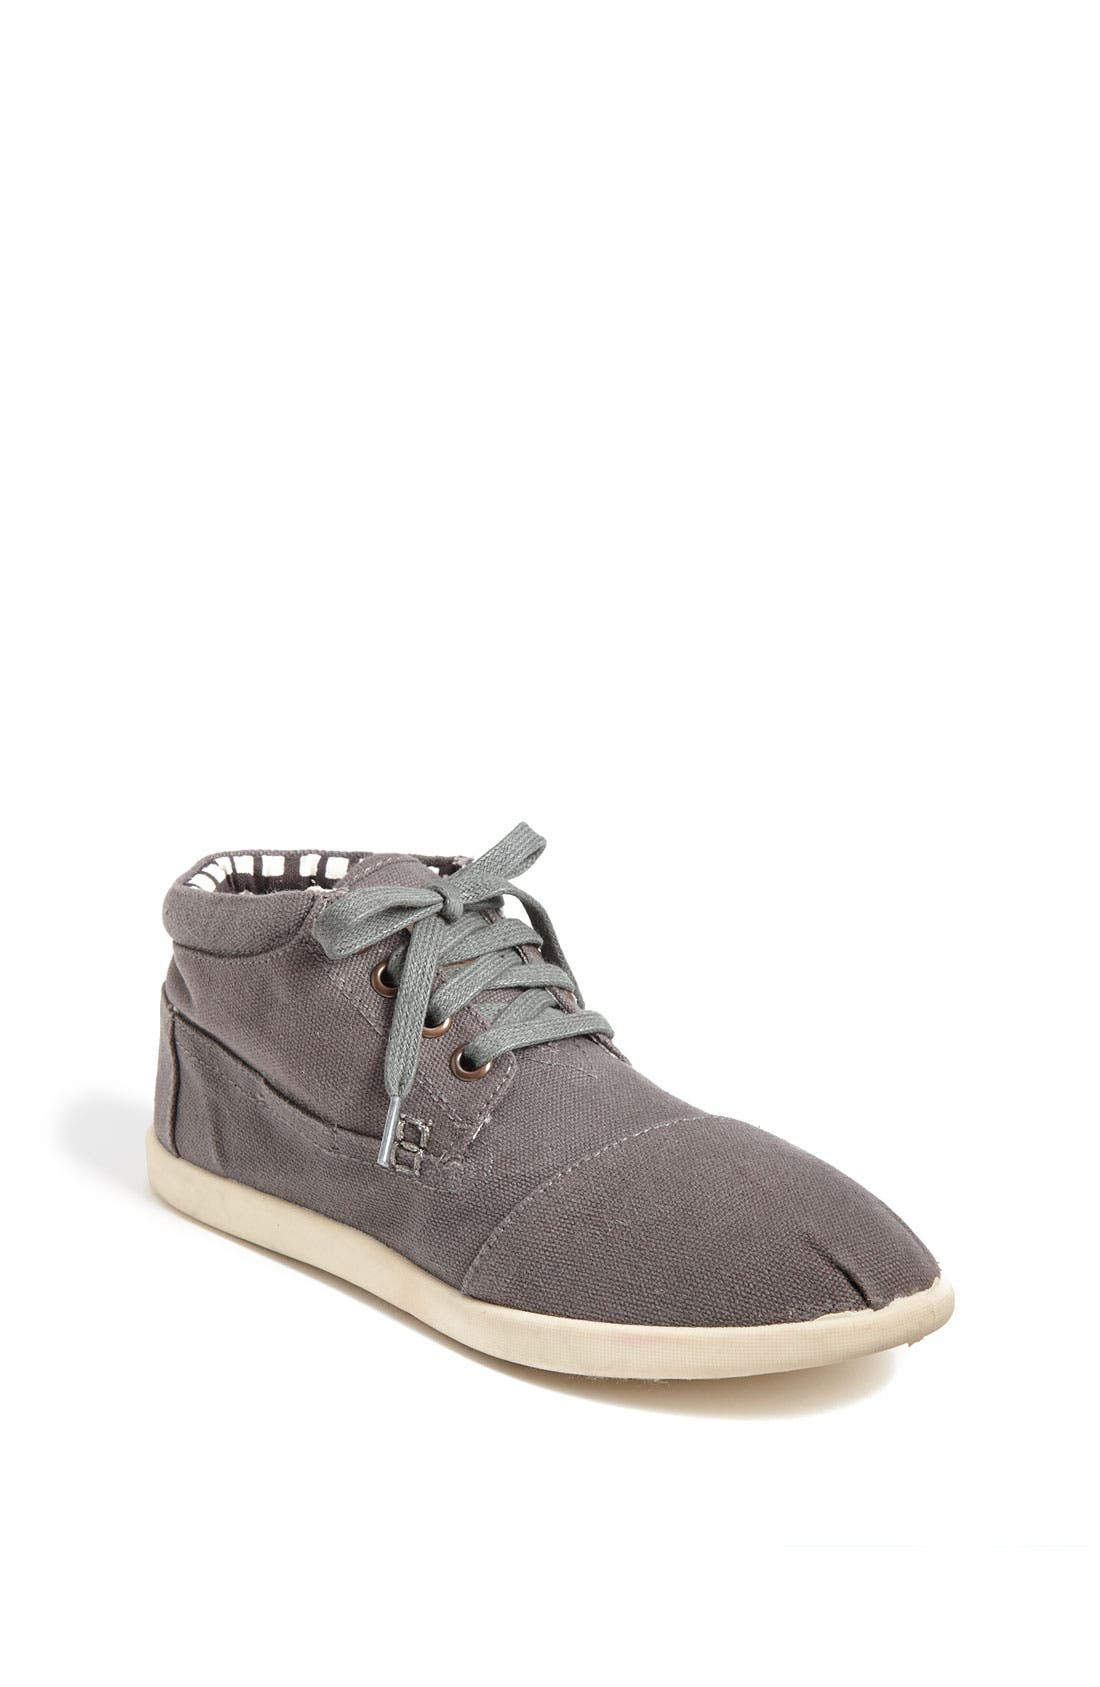 Alternate Image 1 Selected - TOMS 'Botas - Youth' Canvas Boot (Toddler, Little Kid & Big Kid)